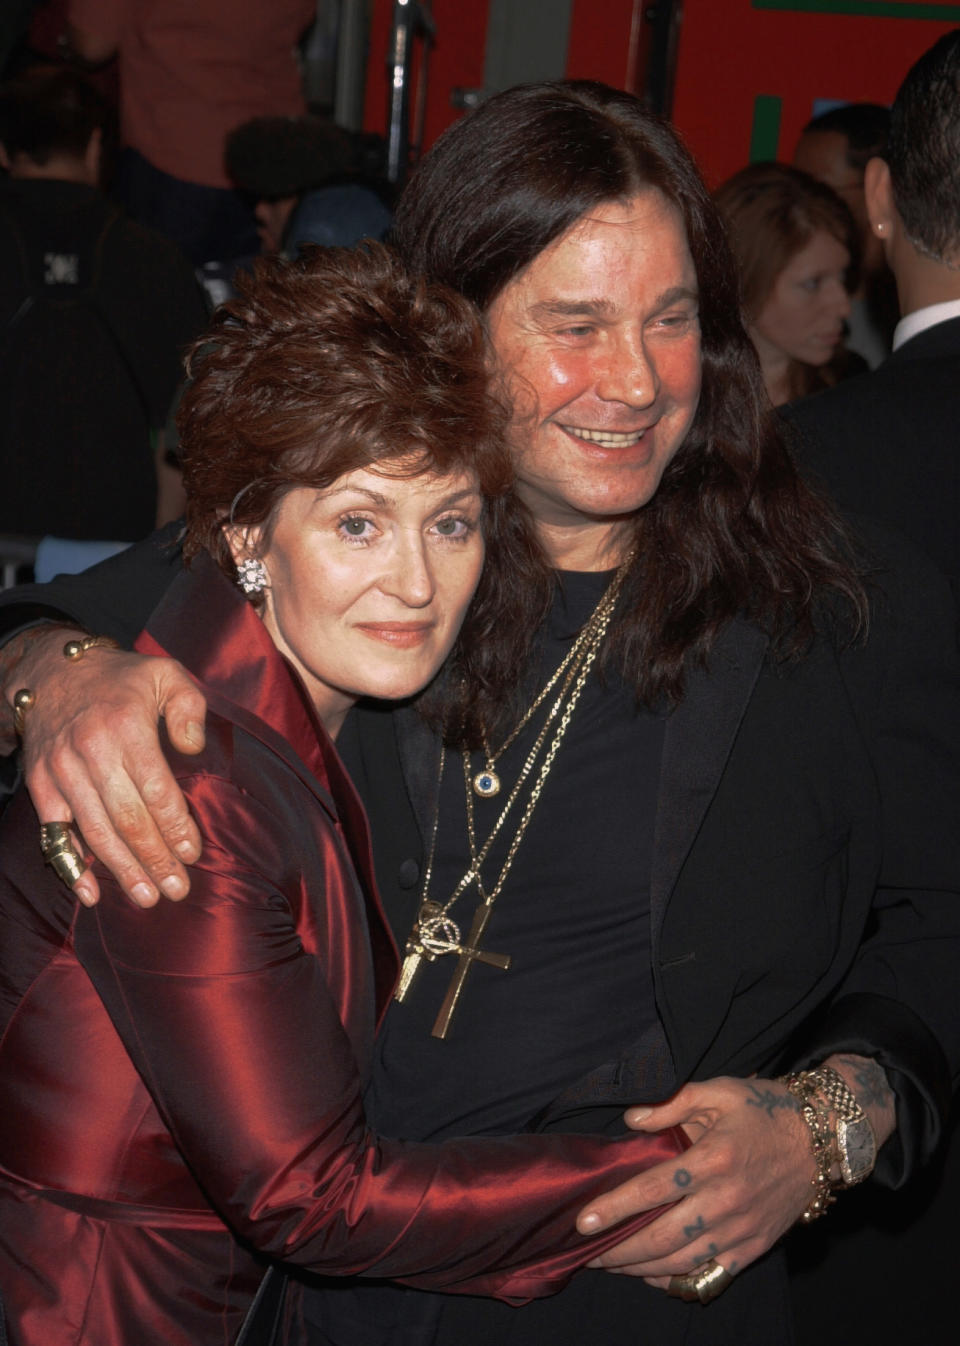 (Original Caption) Ozzy Osborne and his wife Sharon. (Photo by Frank Trapper/Corbis via Getty Images)